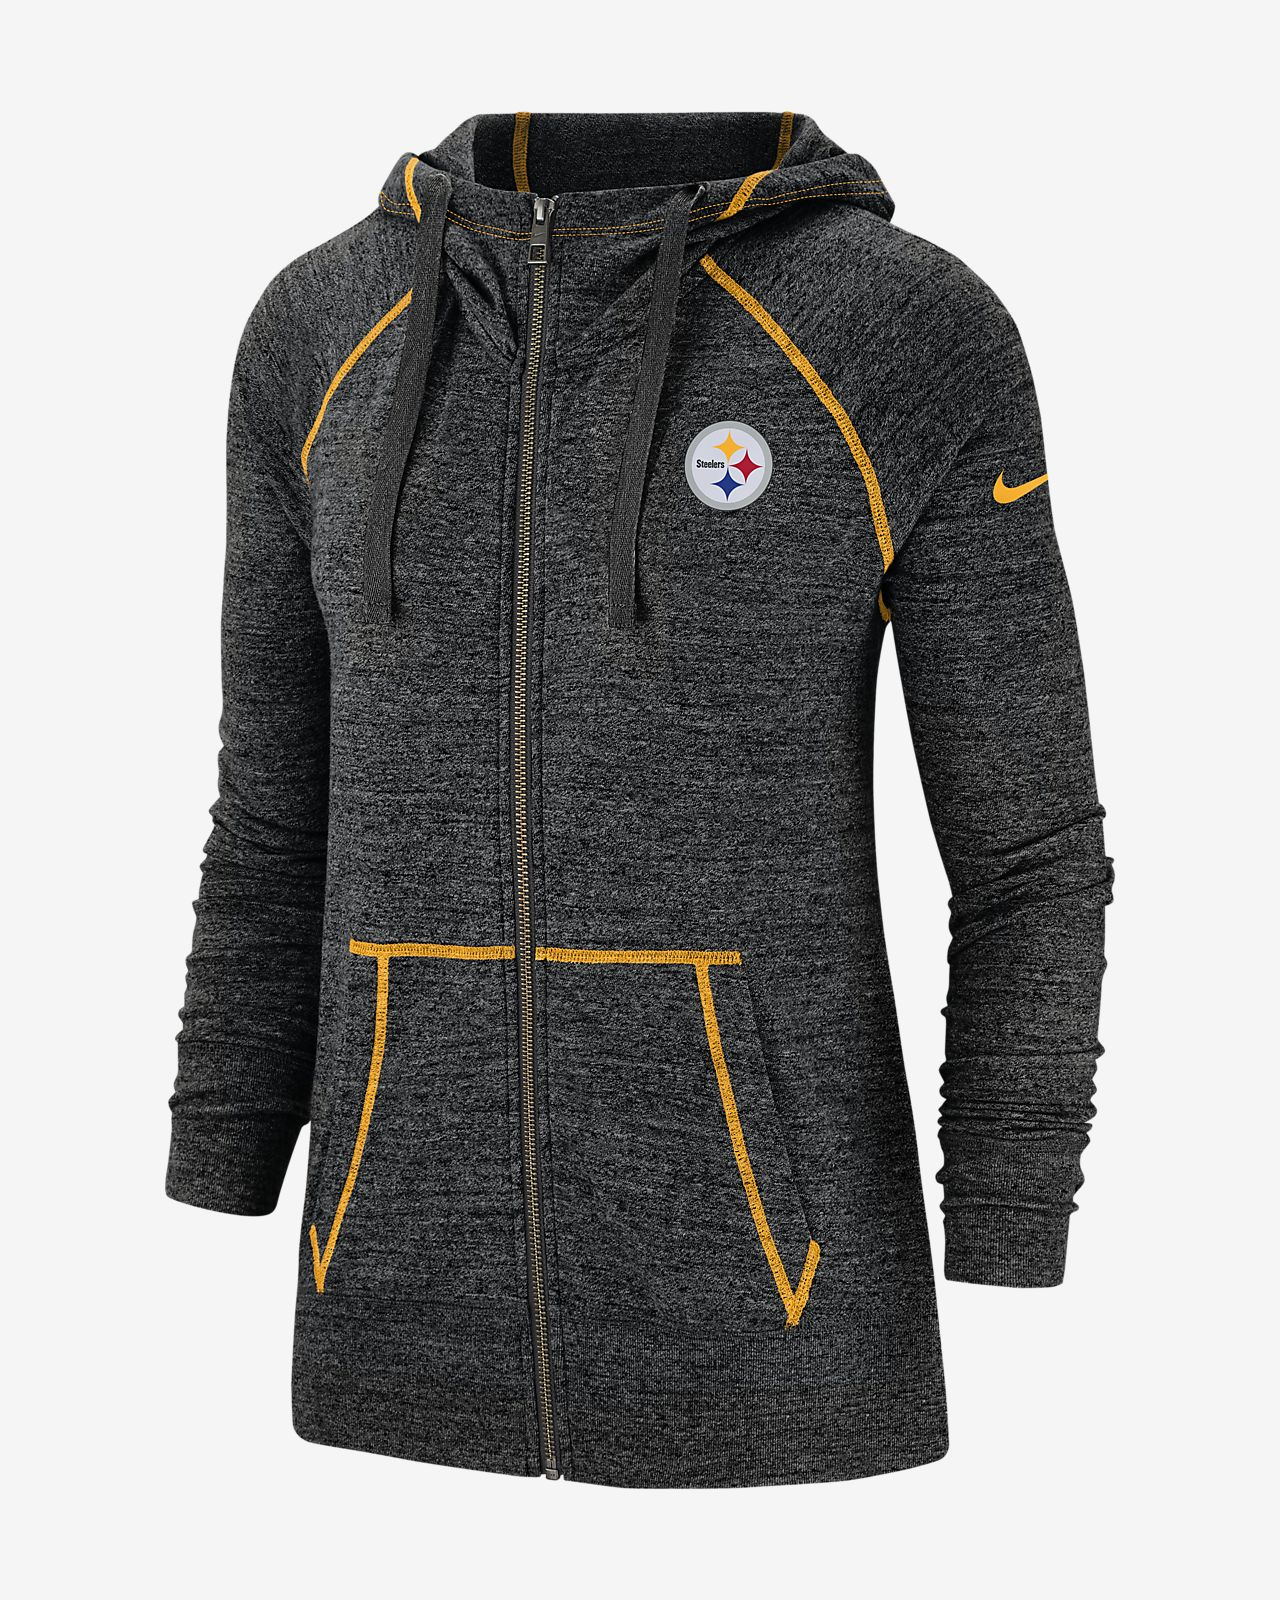 hot sale online 5a541 a8ace Nike Gym Vintage (NFL Steelers) Women's Full-Zip Hoodie